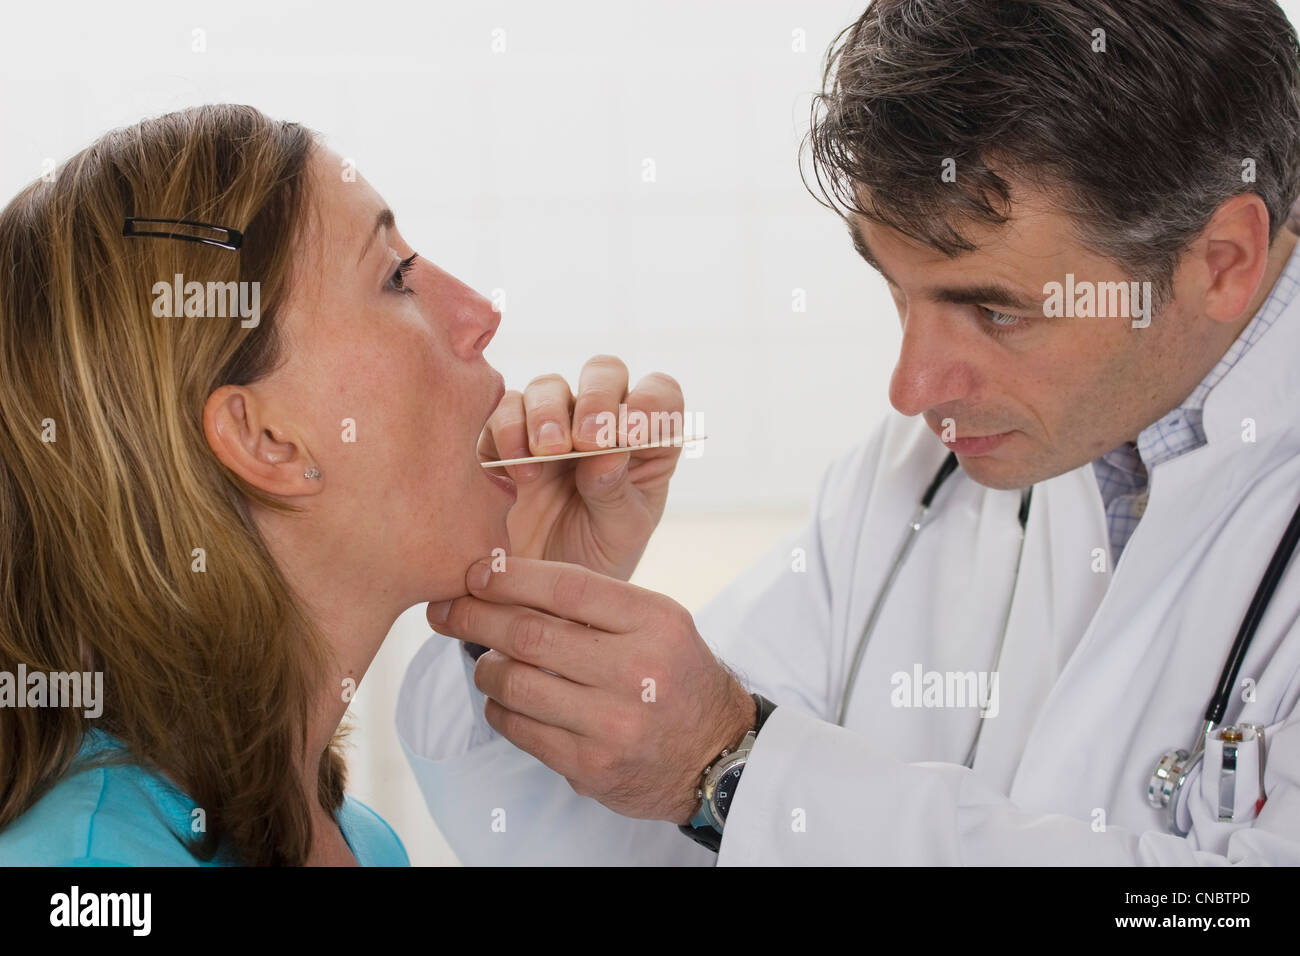 ENT physician examining pharynx of a female outpatient - Stock Image